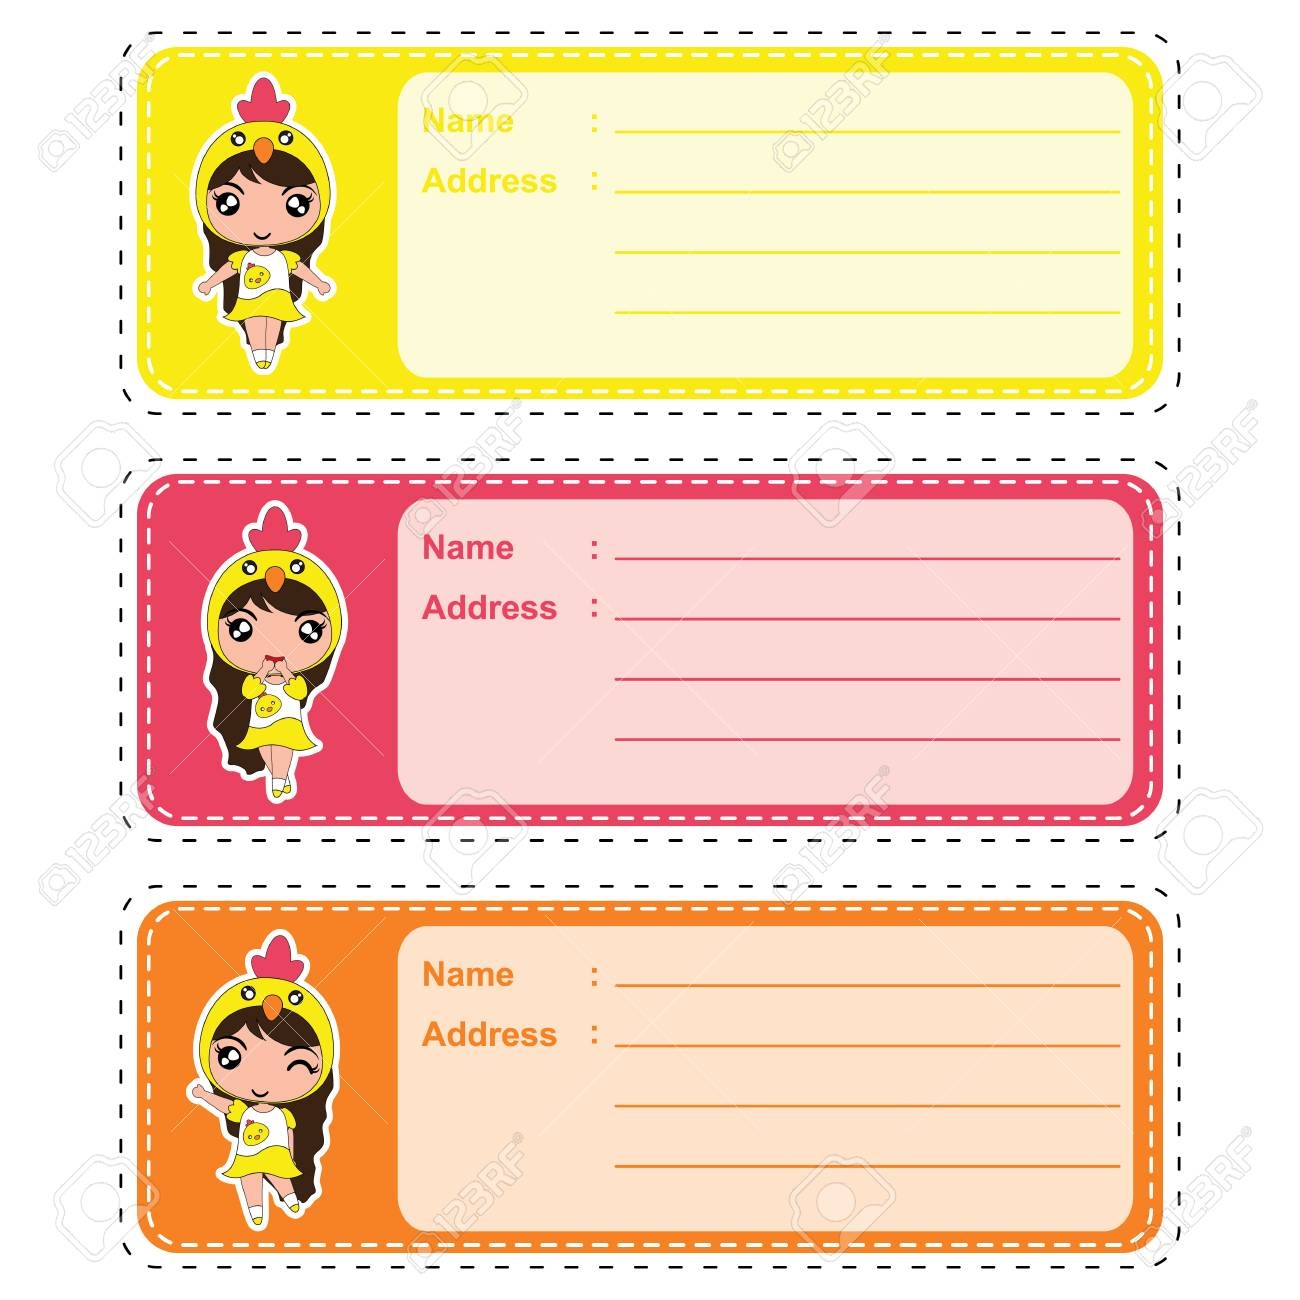 cute address label vector cartoon illustration with cute colorful